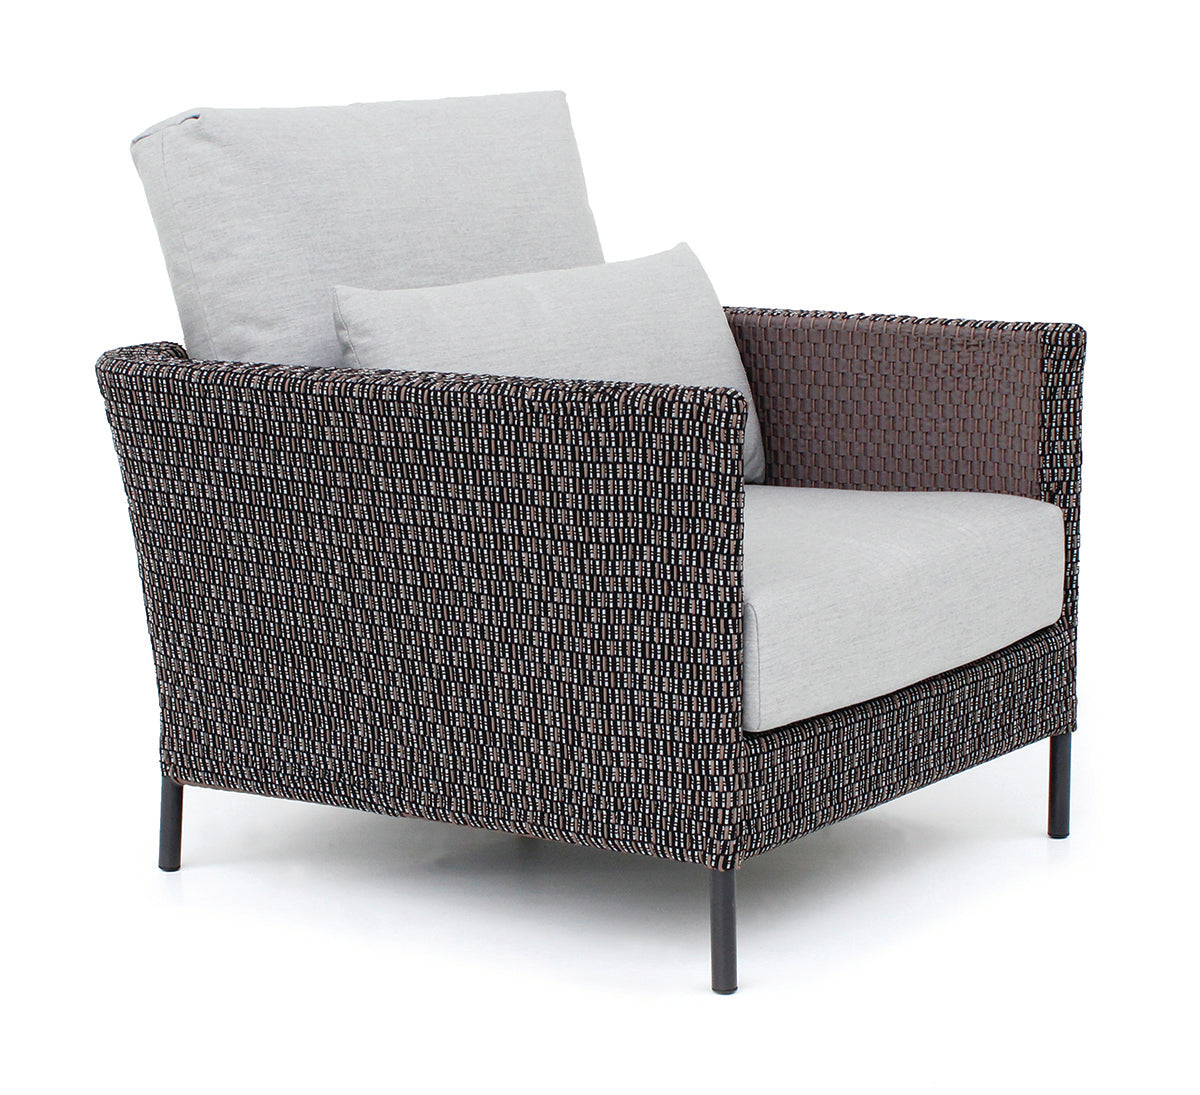 Precision Lounge Chair By BD Outdoor